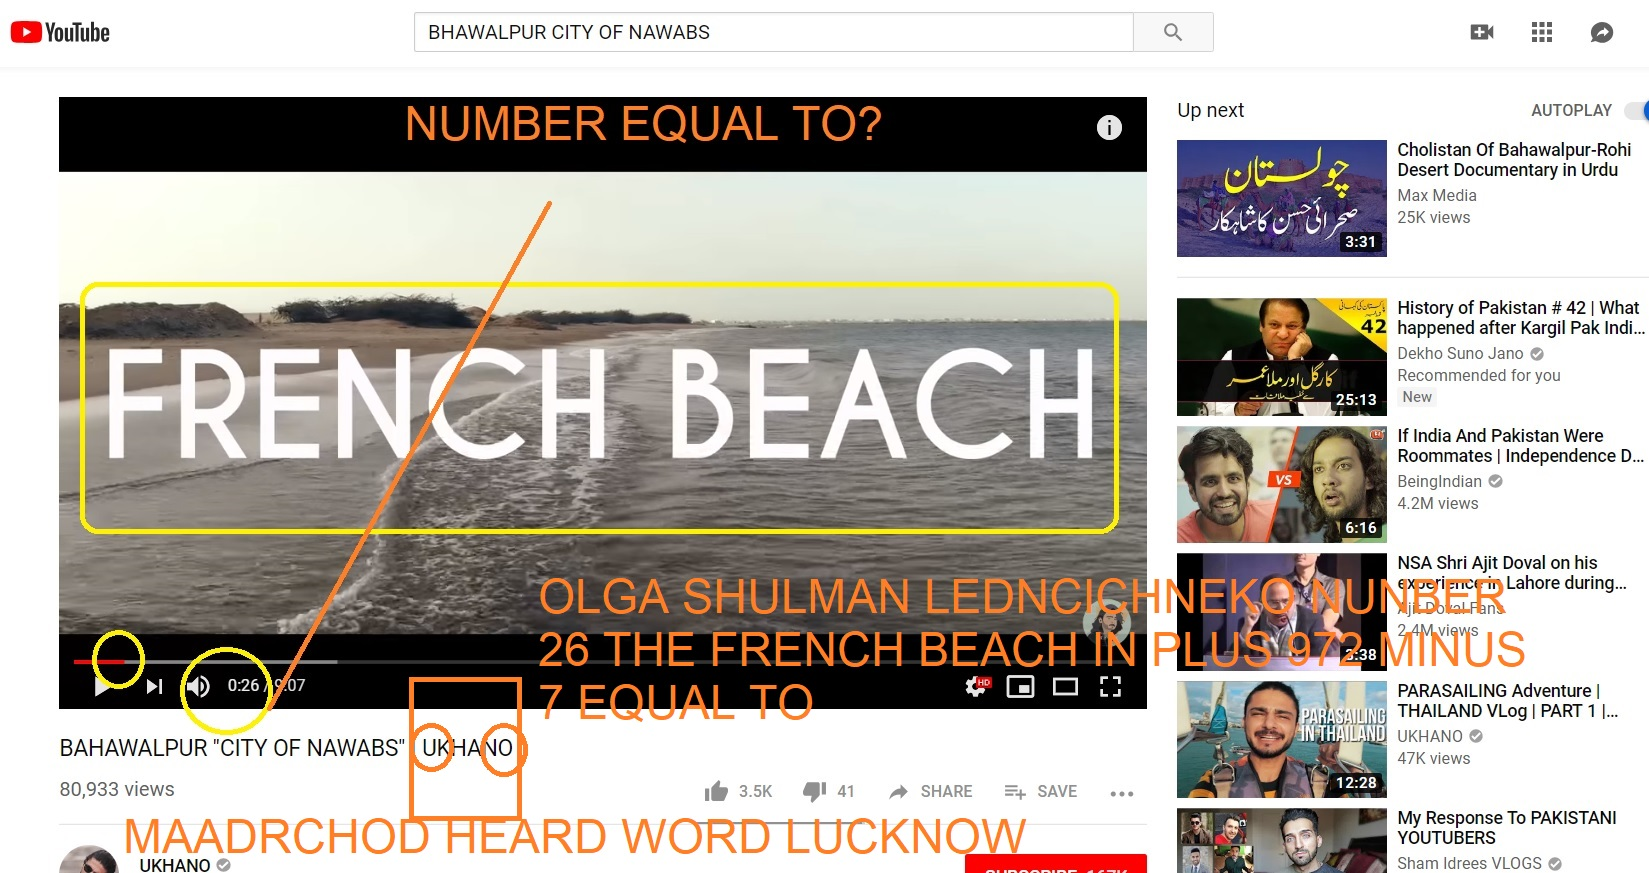 OLGA SHULMAN LEDNCICHNEKO NUNBER 26 THE FRENCH BEACH IN PLUS 972 MINUS 7 EQUAL TO